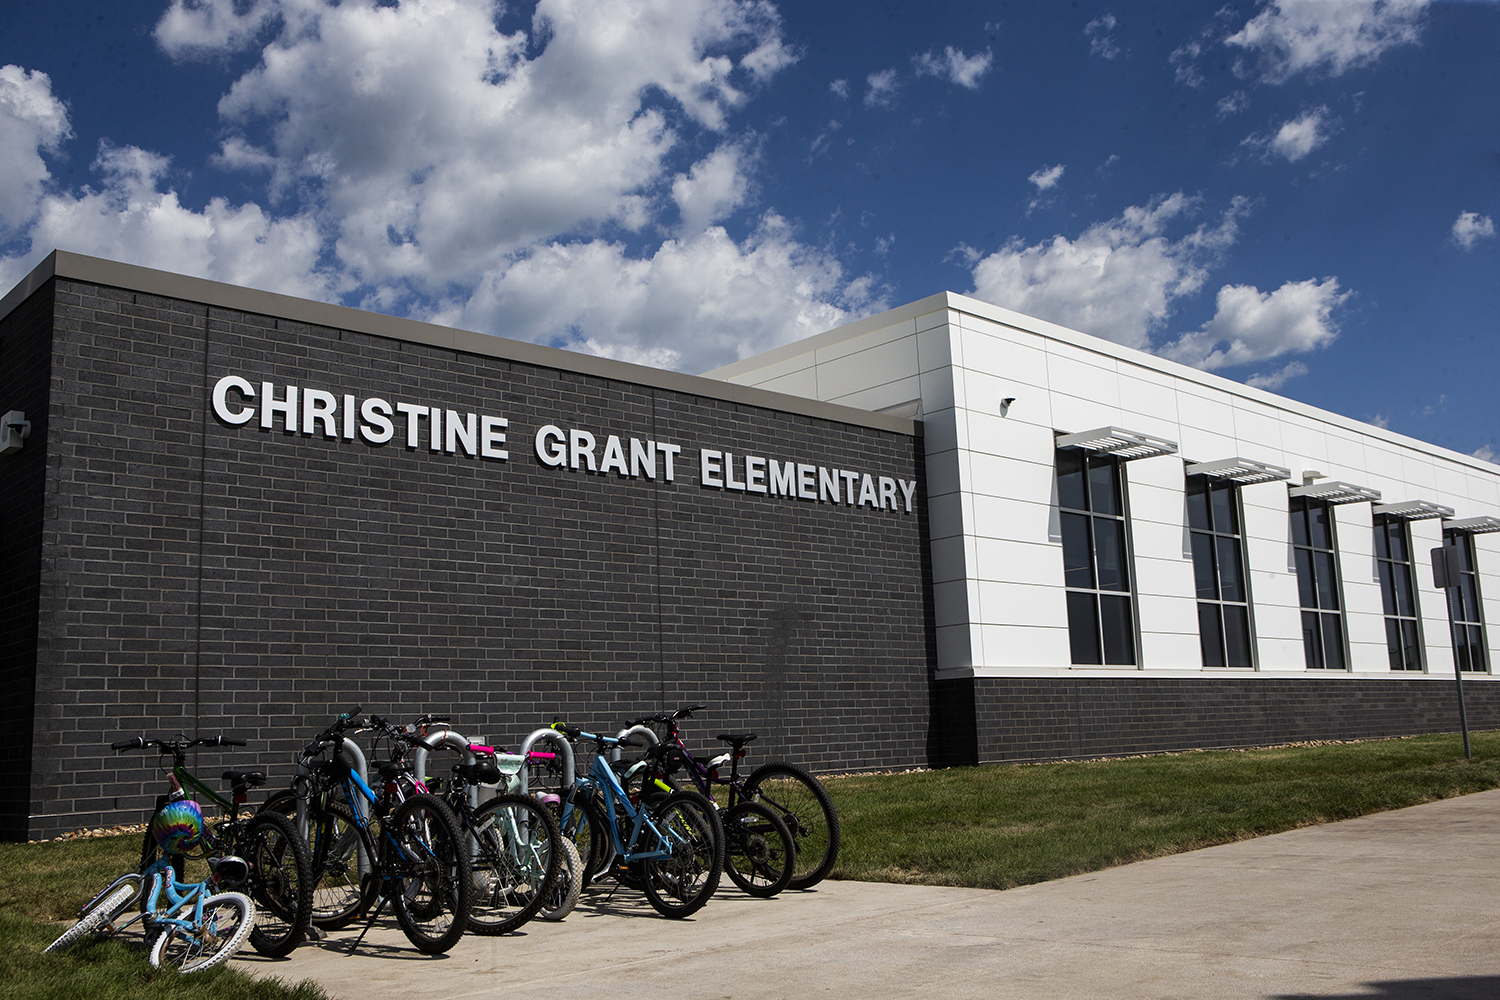 Christine Grant Elementary is seen on Thursday, August 29, 2019. (Katina Zentz/The Daily Iowan)